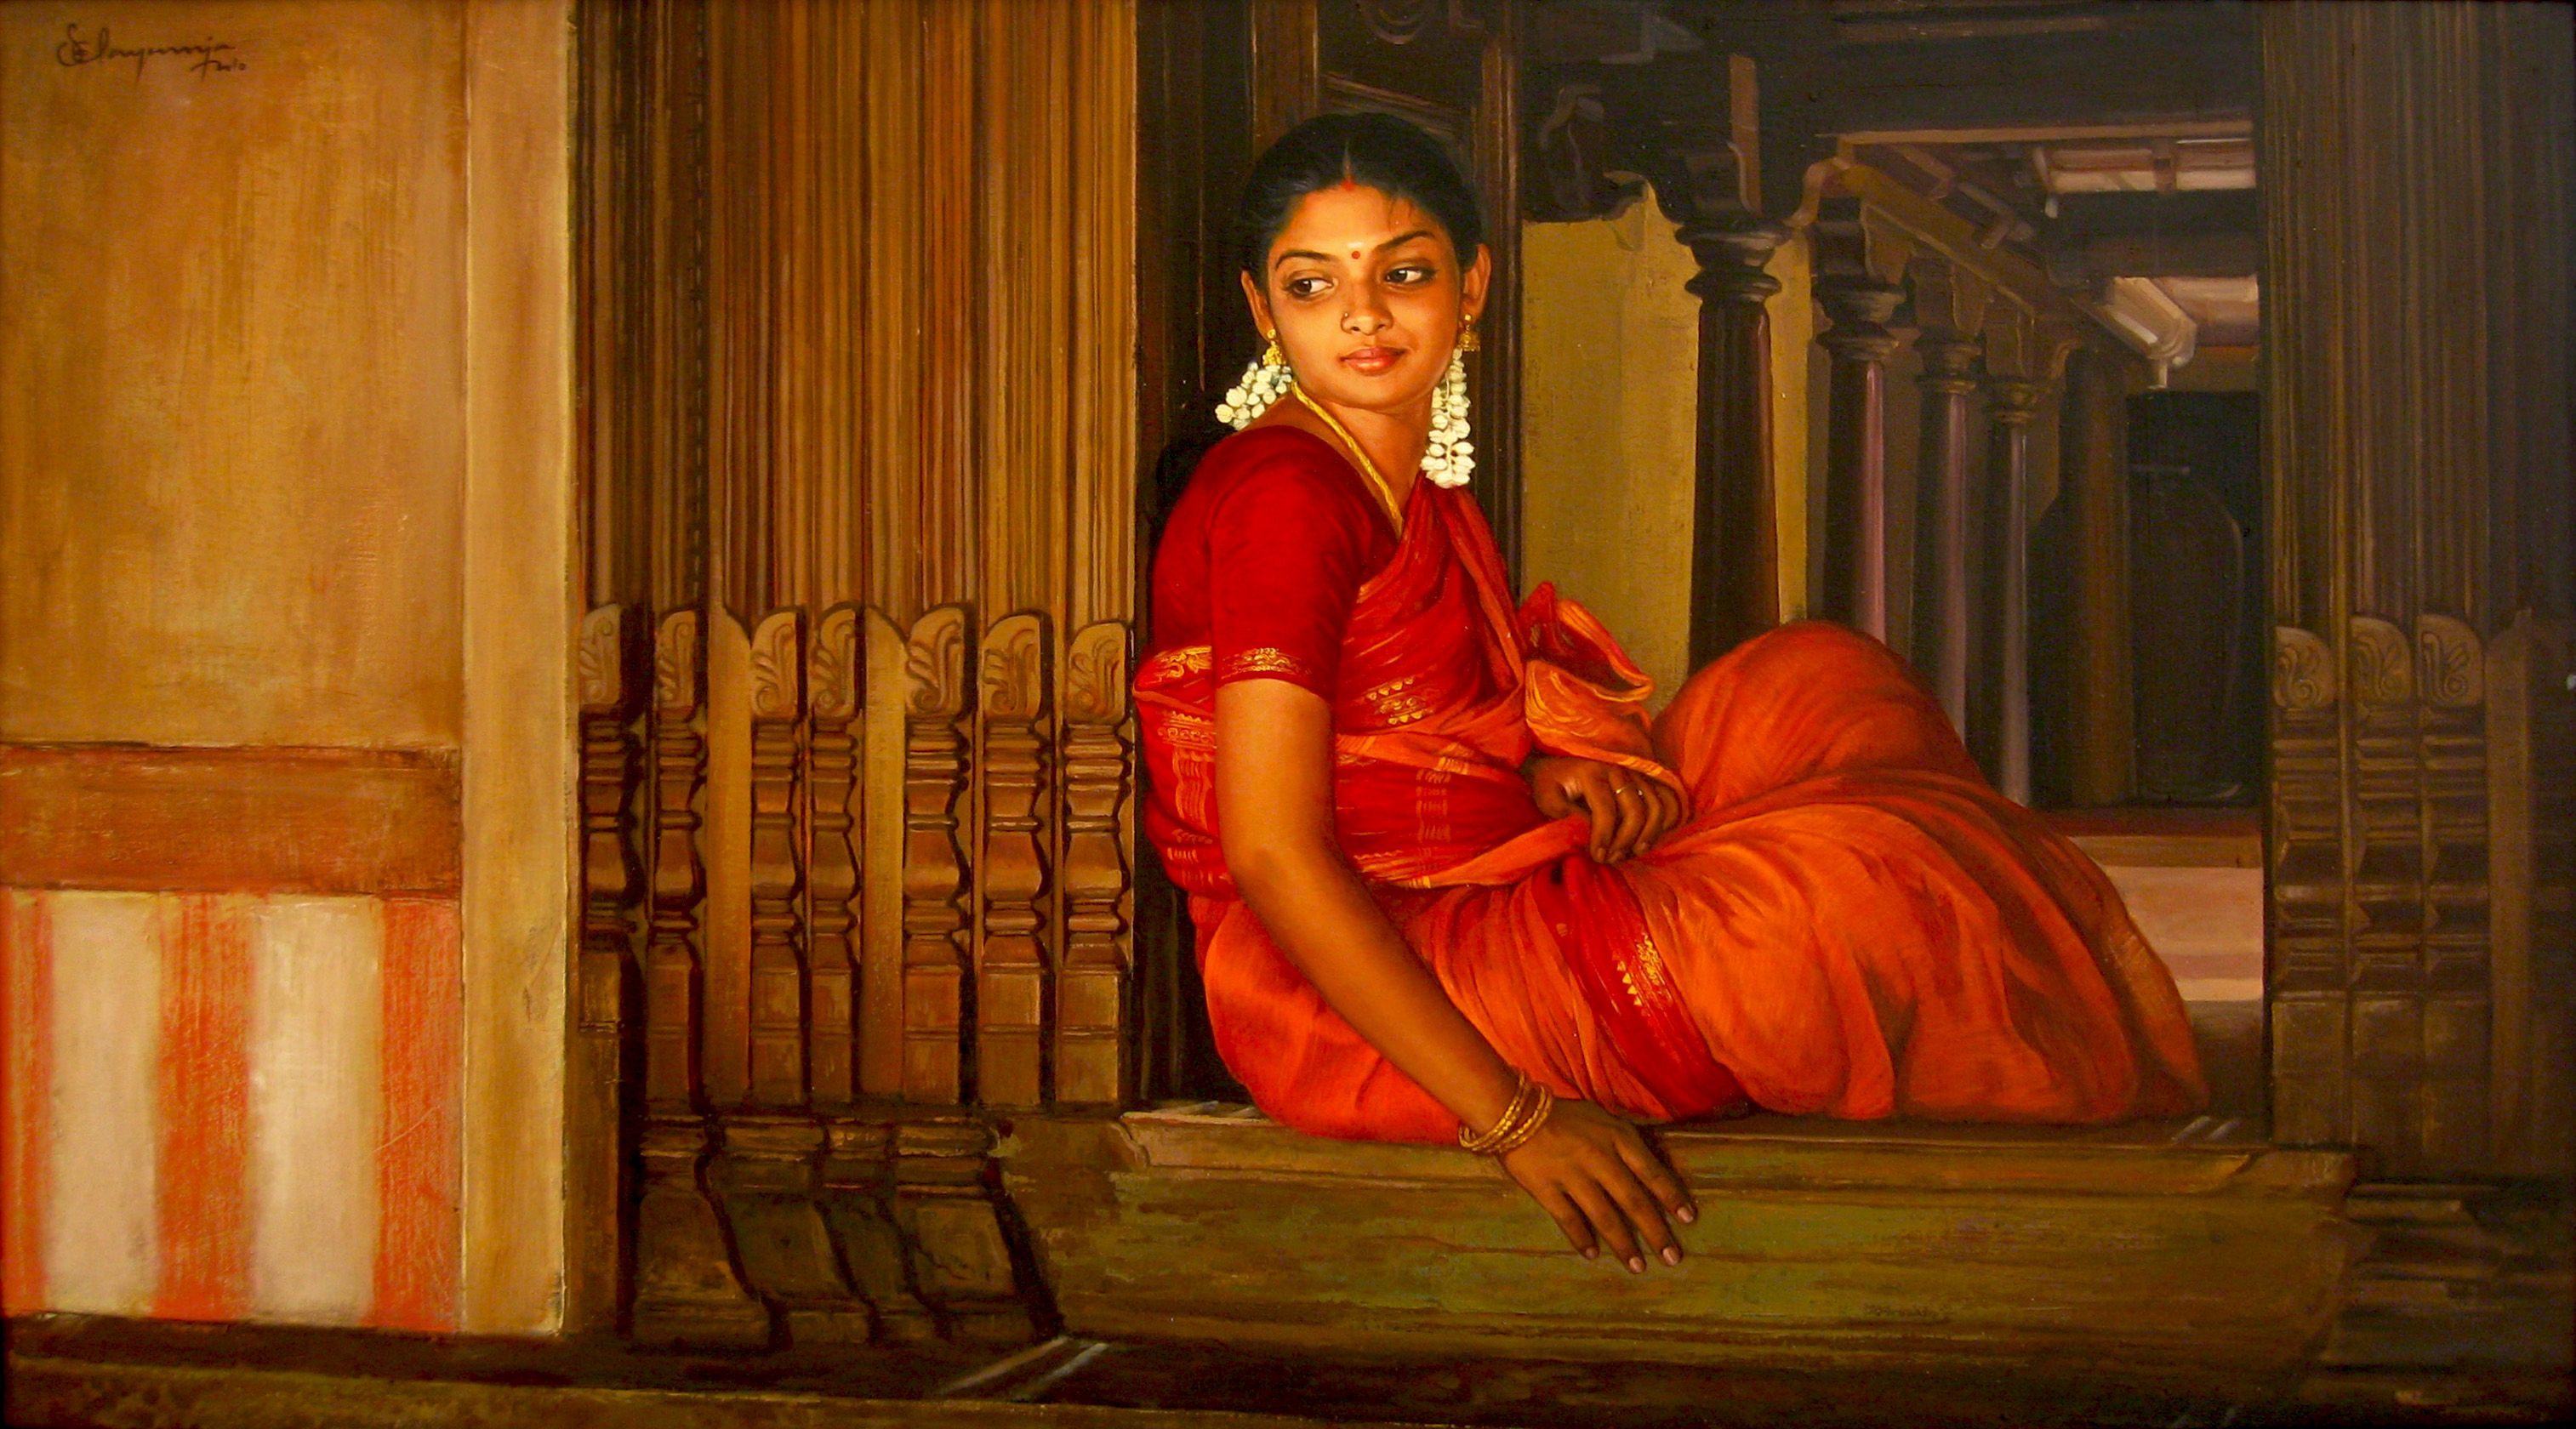 South Indian Tradition and Naturalism Revisited Very